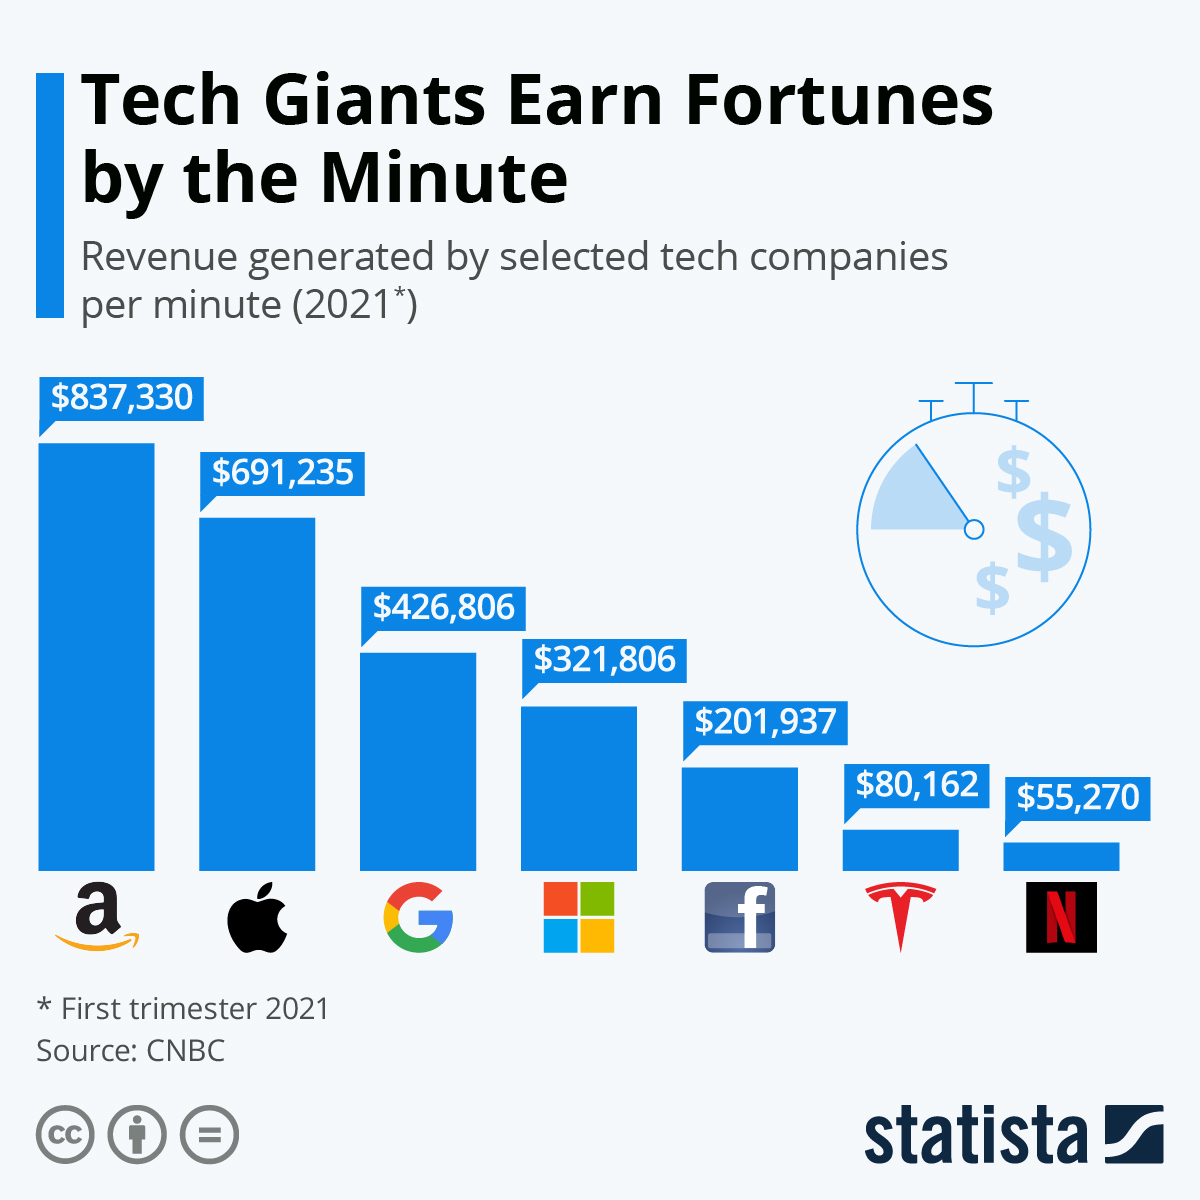 Tech Giants Earn Fortunes by the Minute